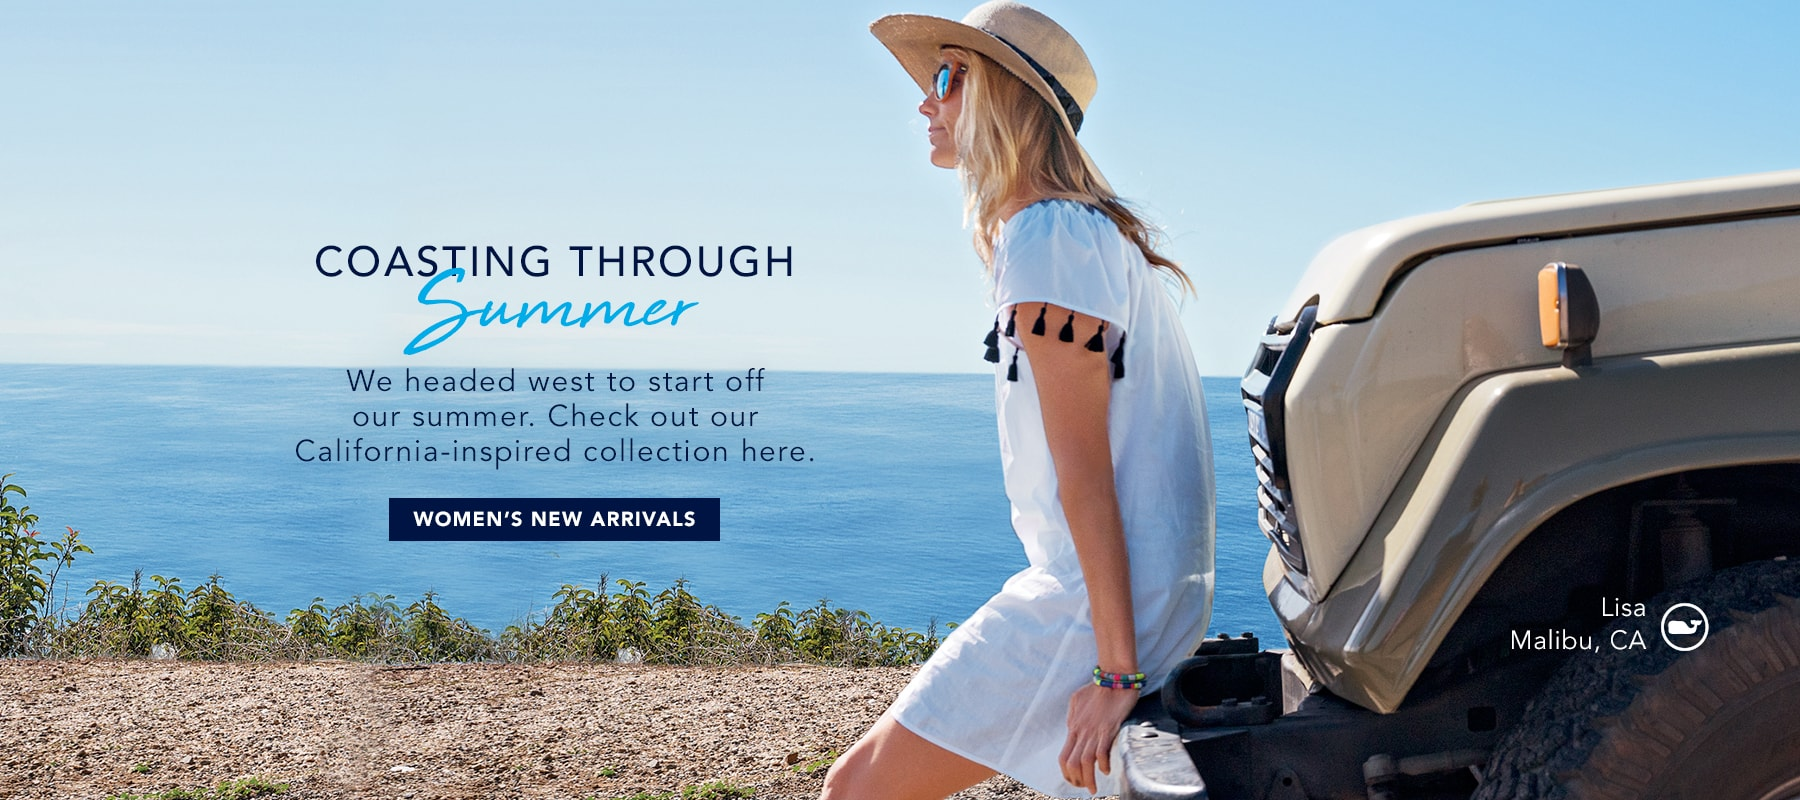 Coasting through summer. Shop women's new arrivals.